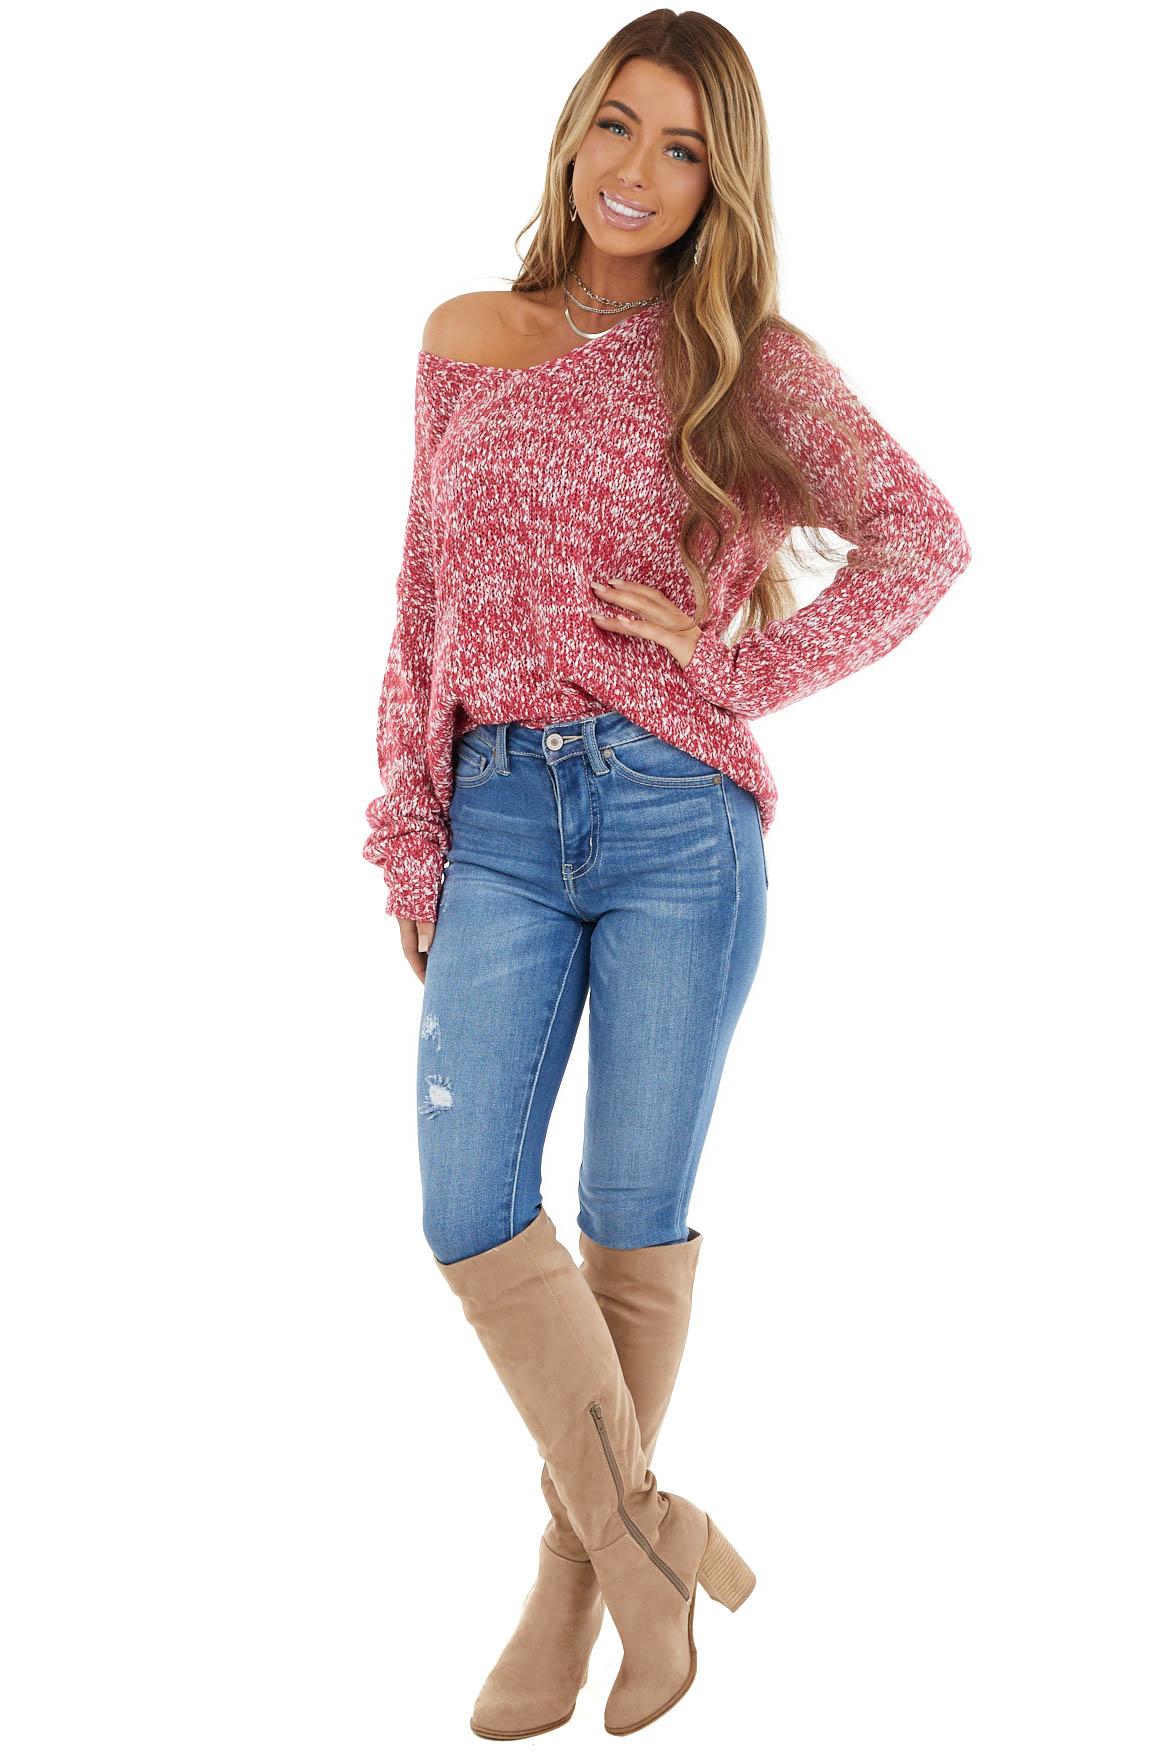 Fuchsia and White Two Toned Knit Sweater with Long Sleeves